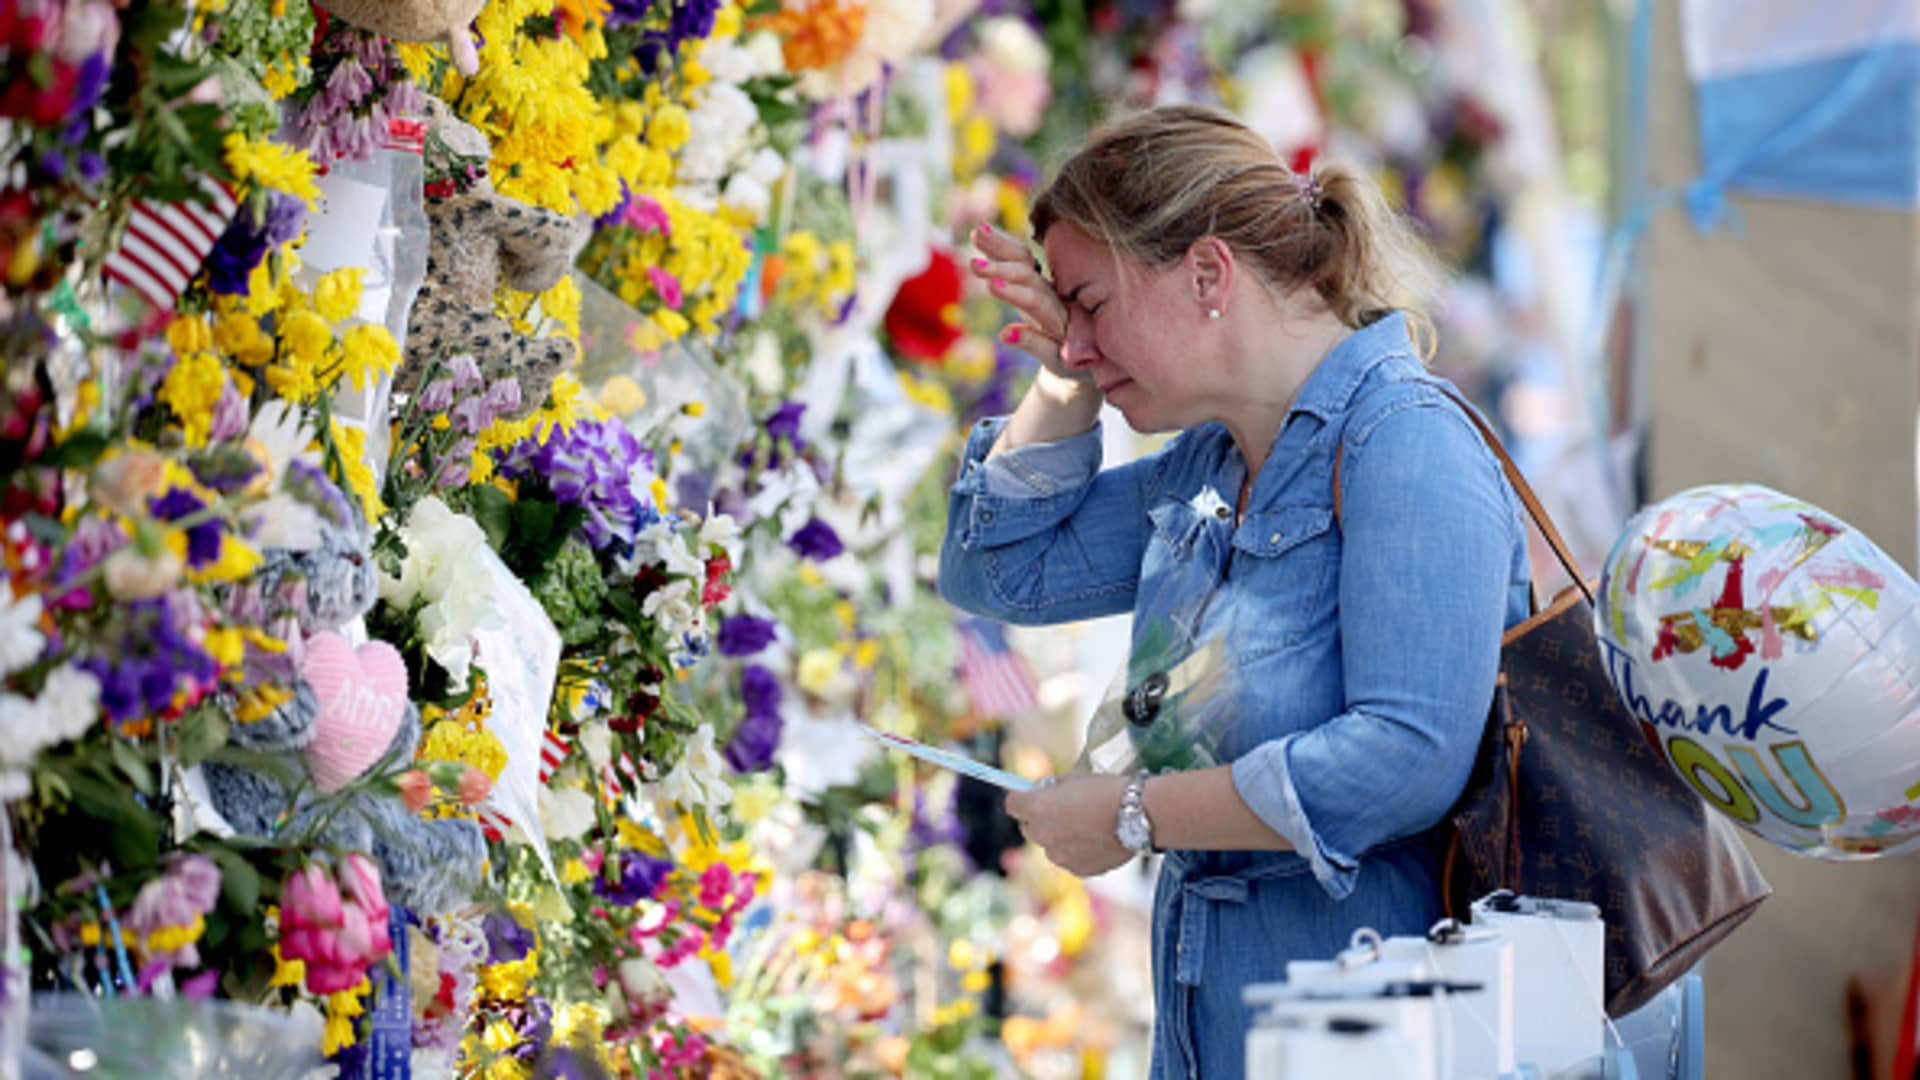 Laura Solla weeps as she places flowers near the memorial site for victims of the collapsed 12-story Champlain Towers South condo building on July 08, 2021 in Surfside, Florida.